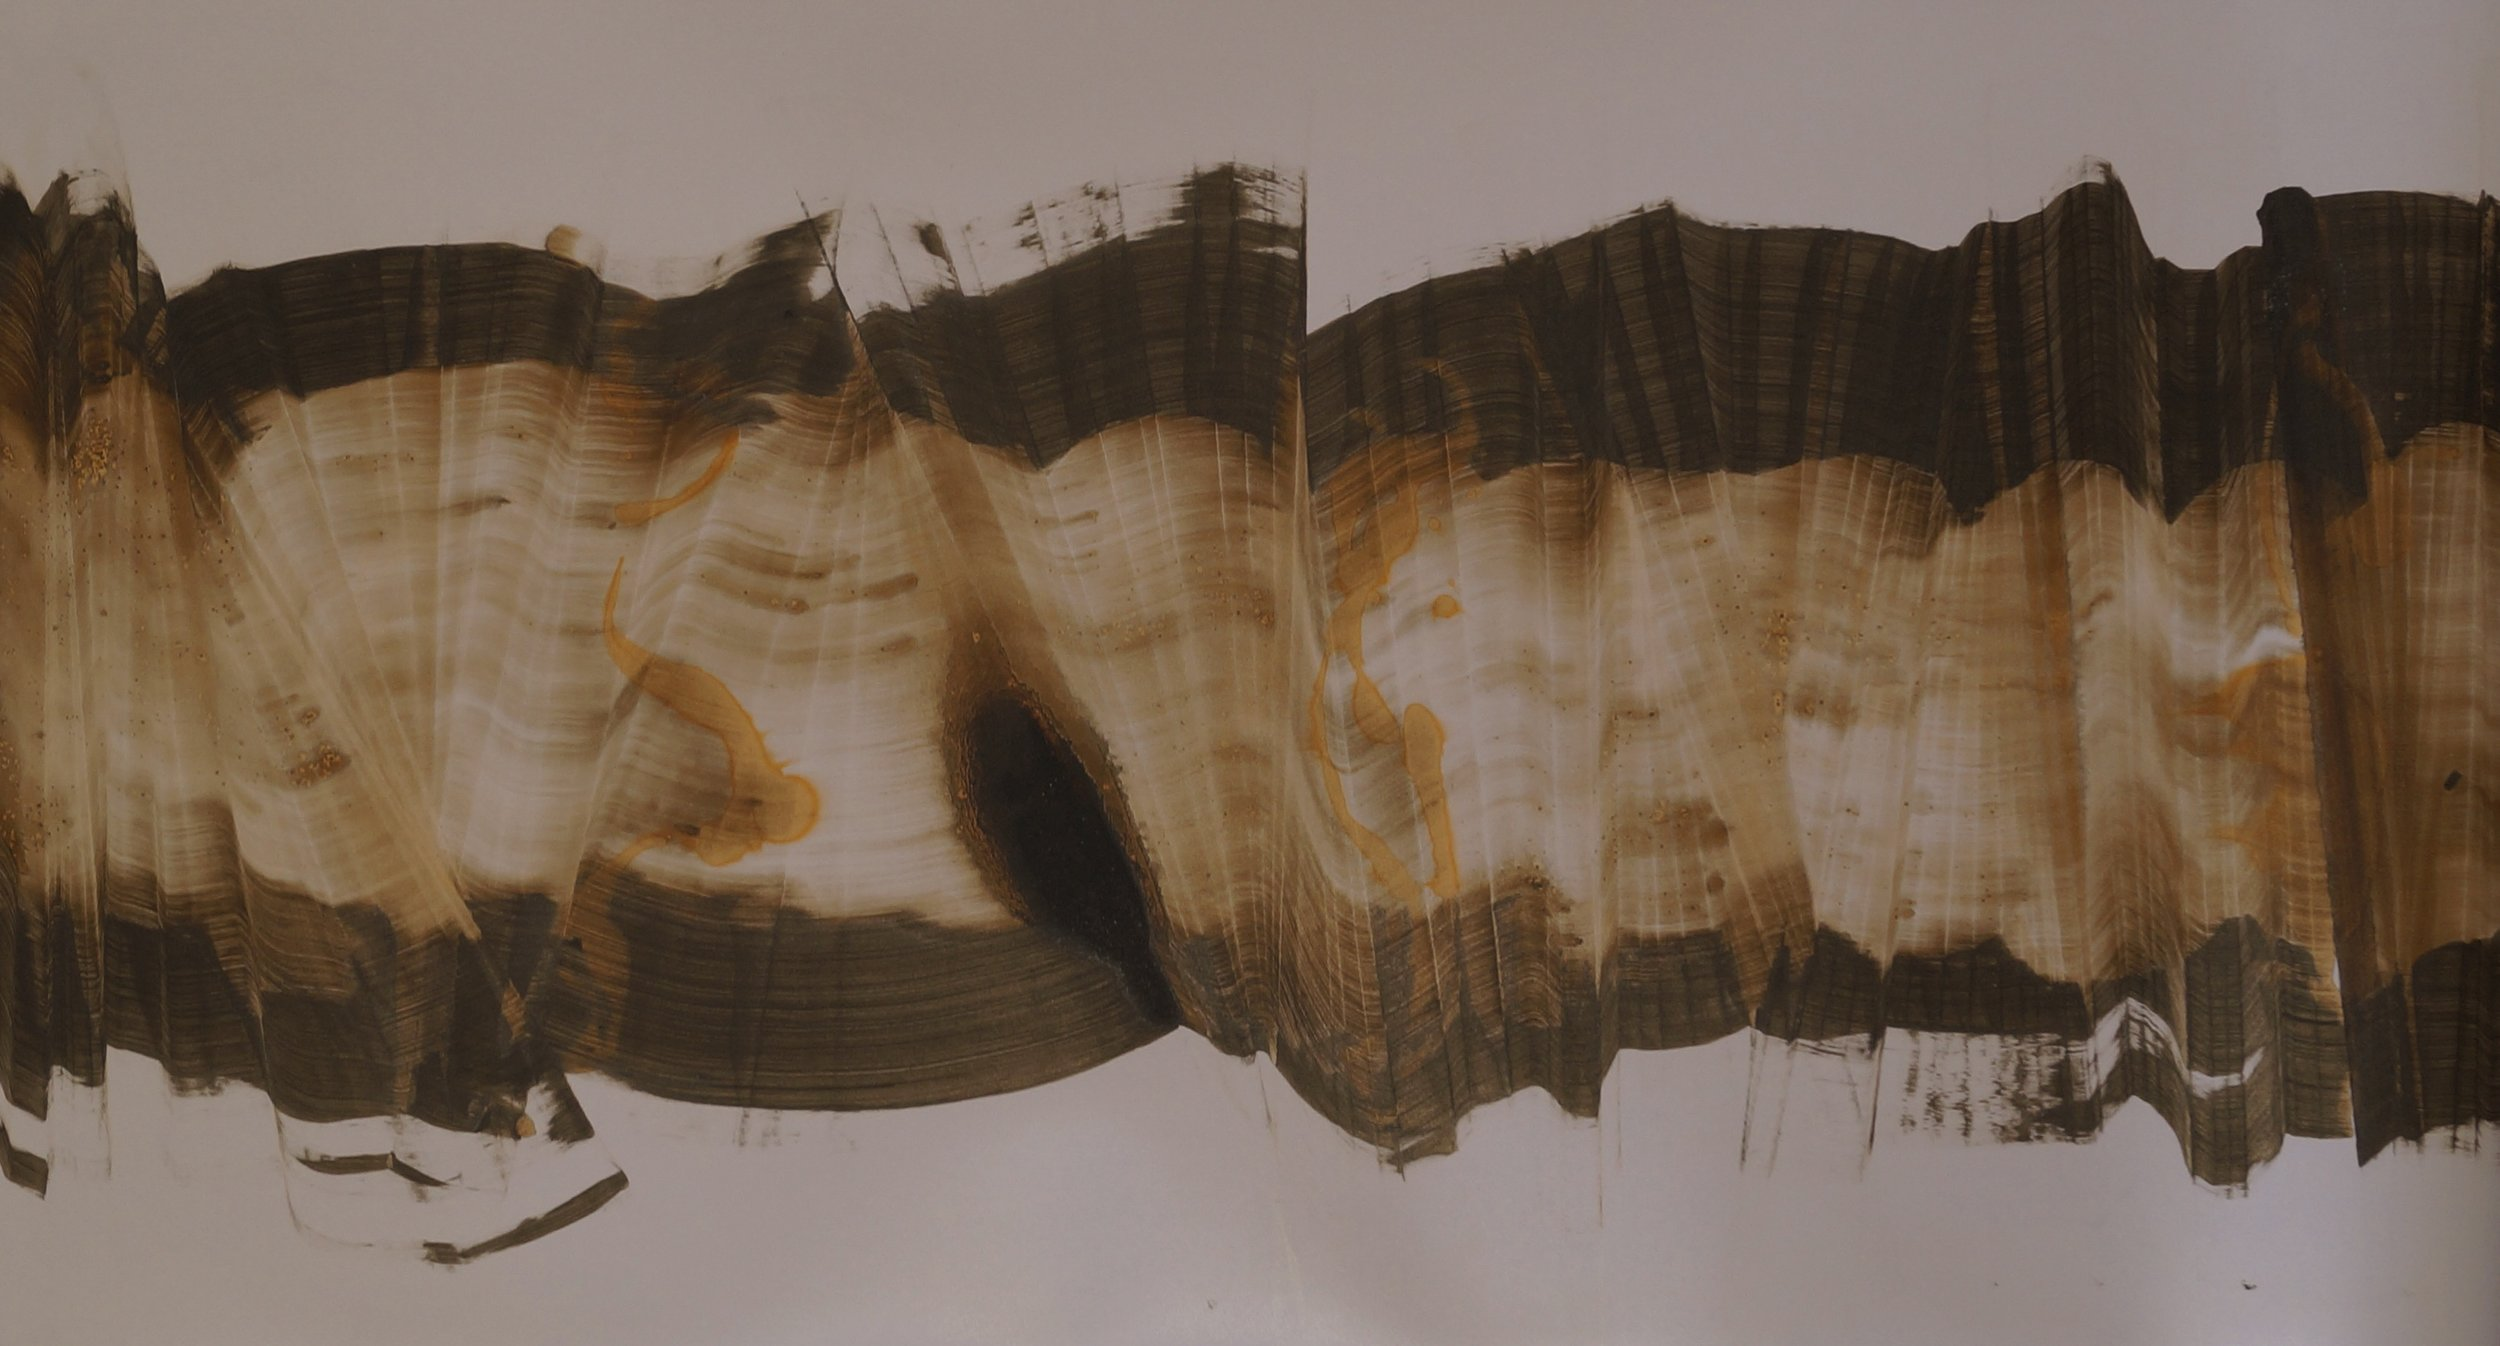 Sans titre, 110cm x 61cm ; Technique mixte sur papier photo, 2014